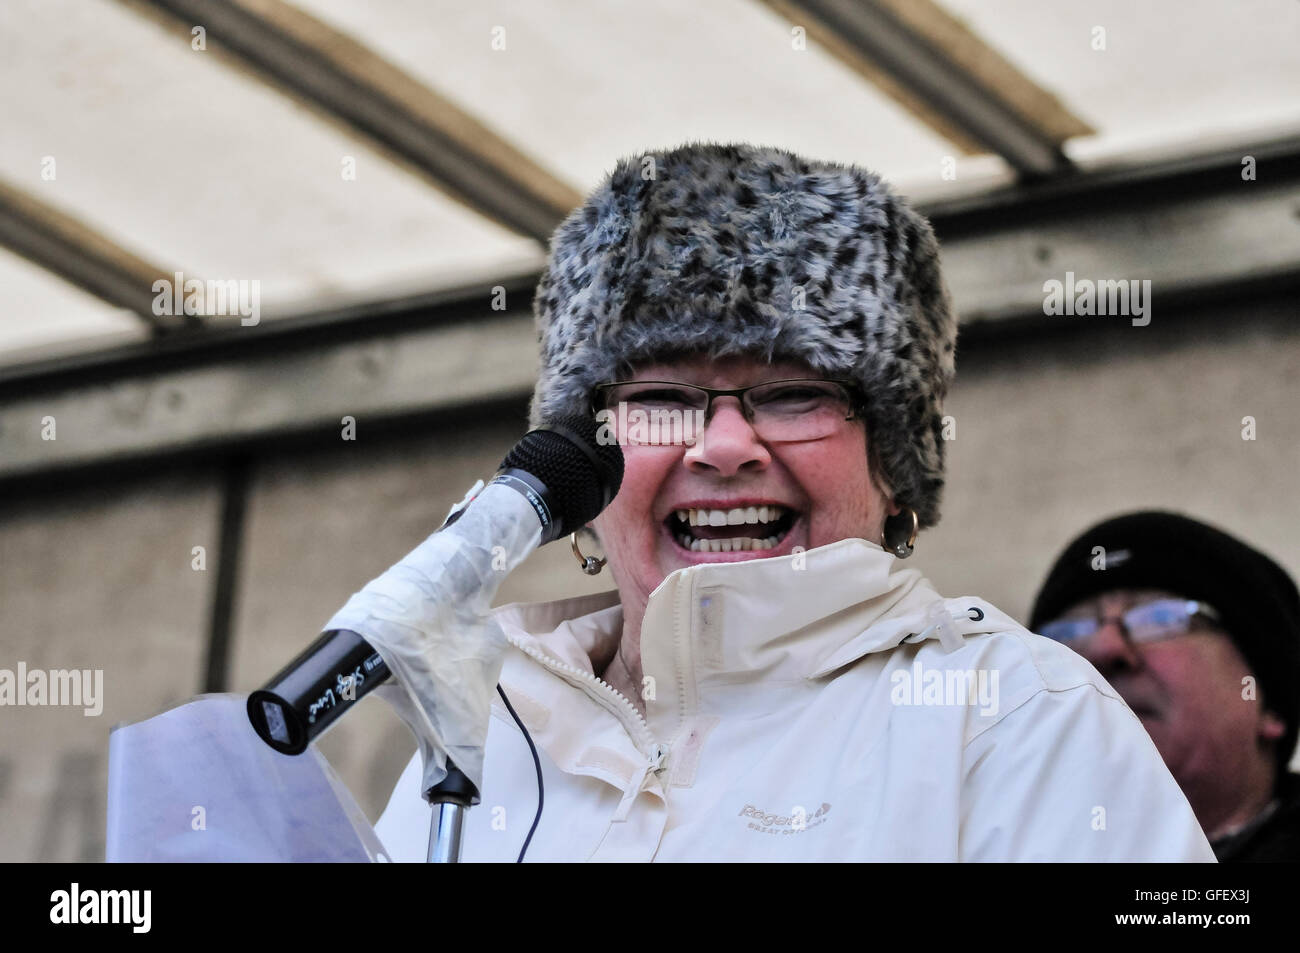 27th January 2013, Derry, Northern Ireland. Kate Nash, family member of one of the victims at the 41st Anniversary - Stock Image